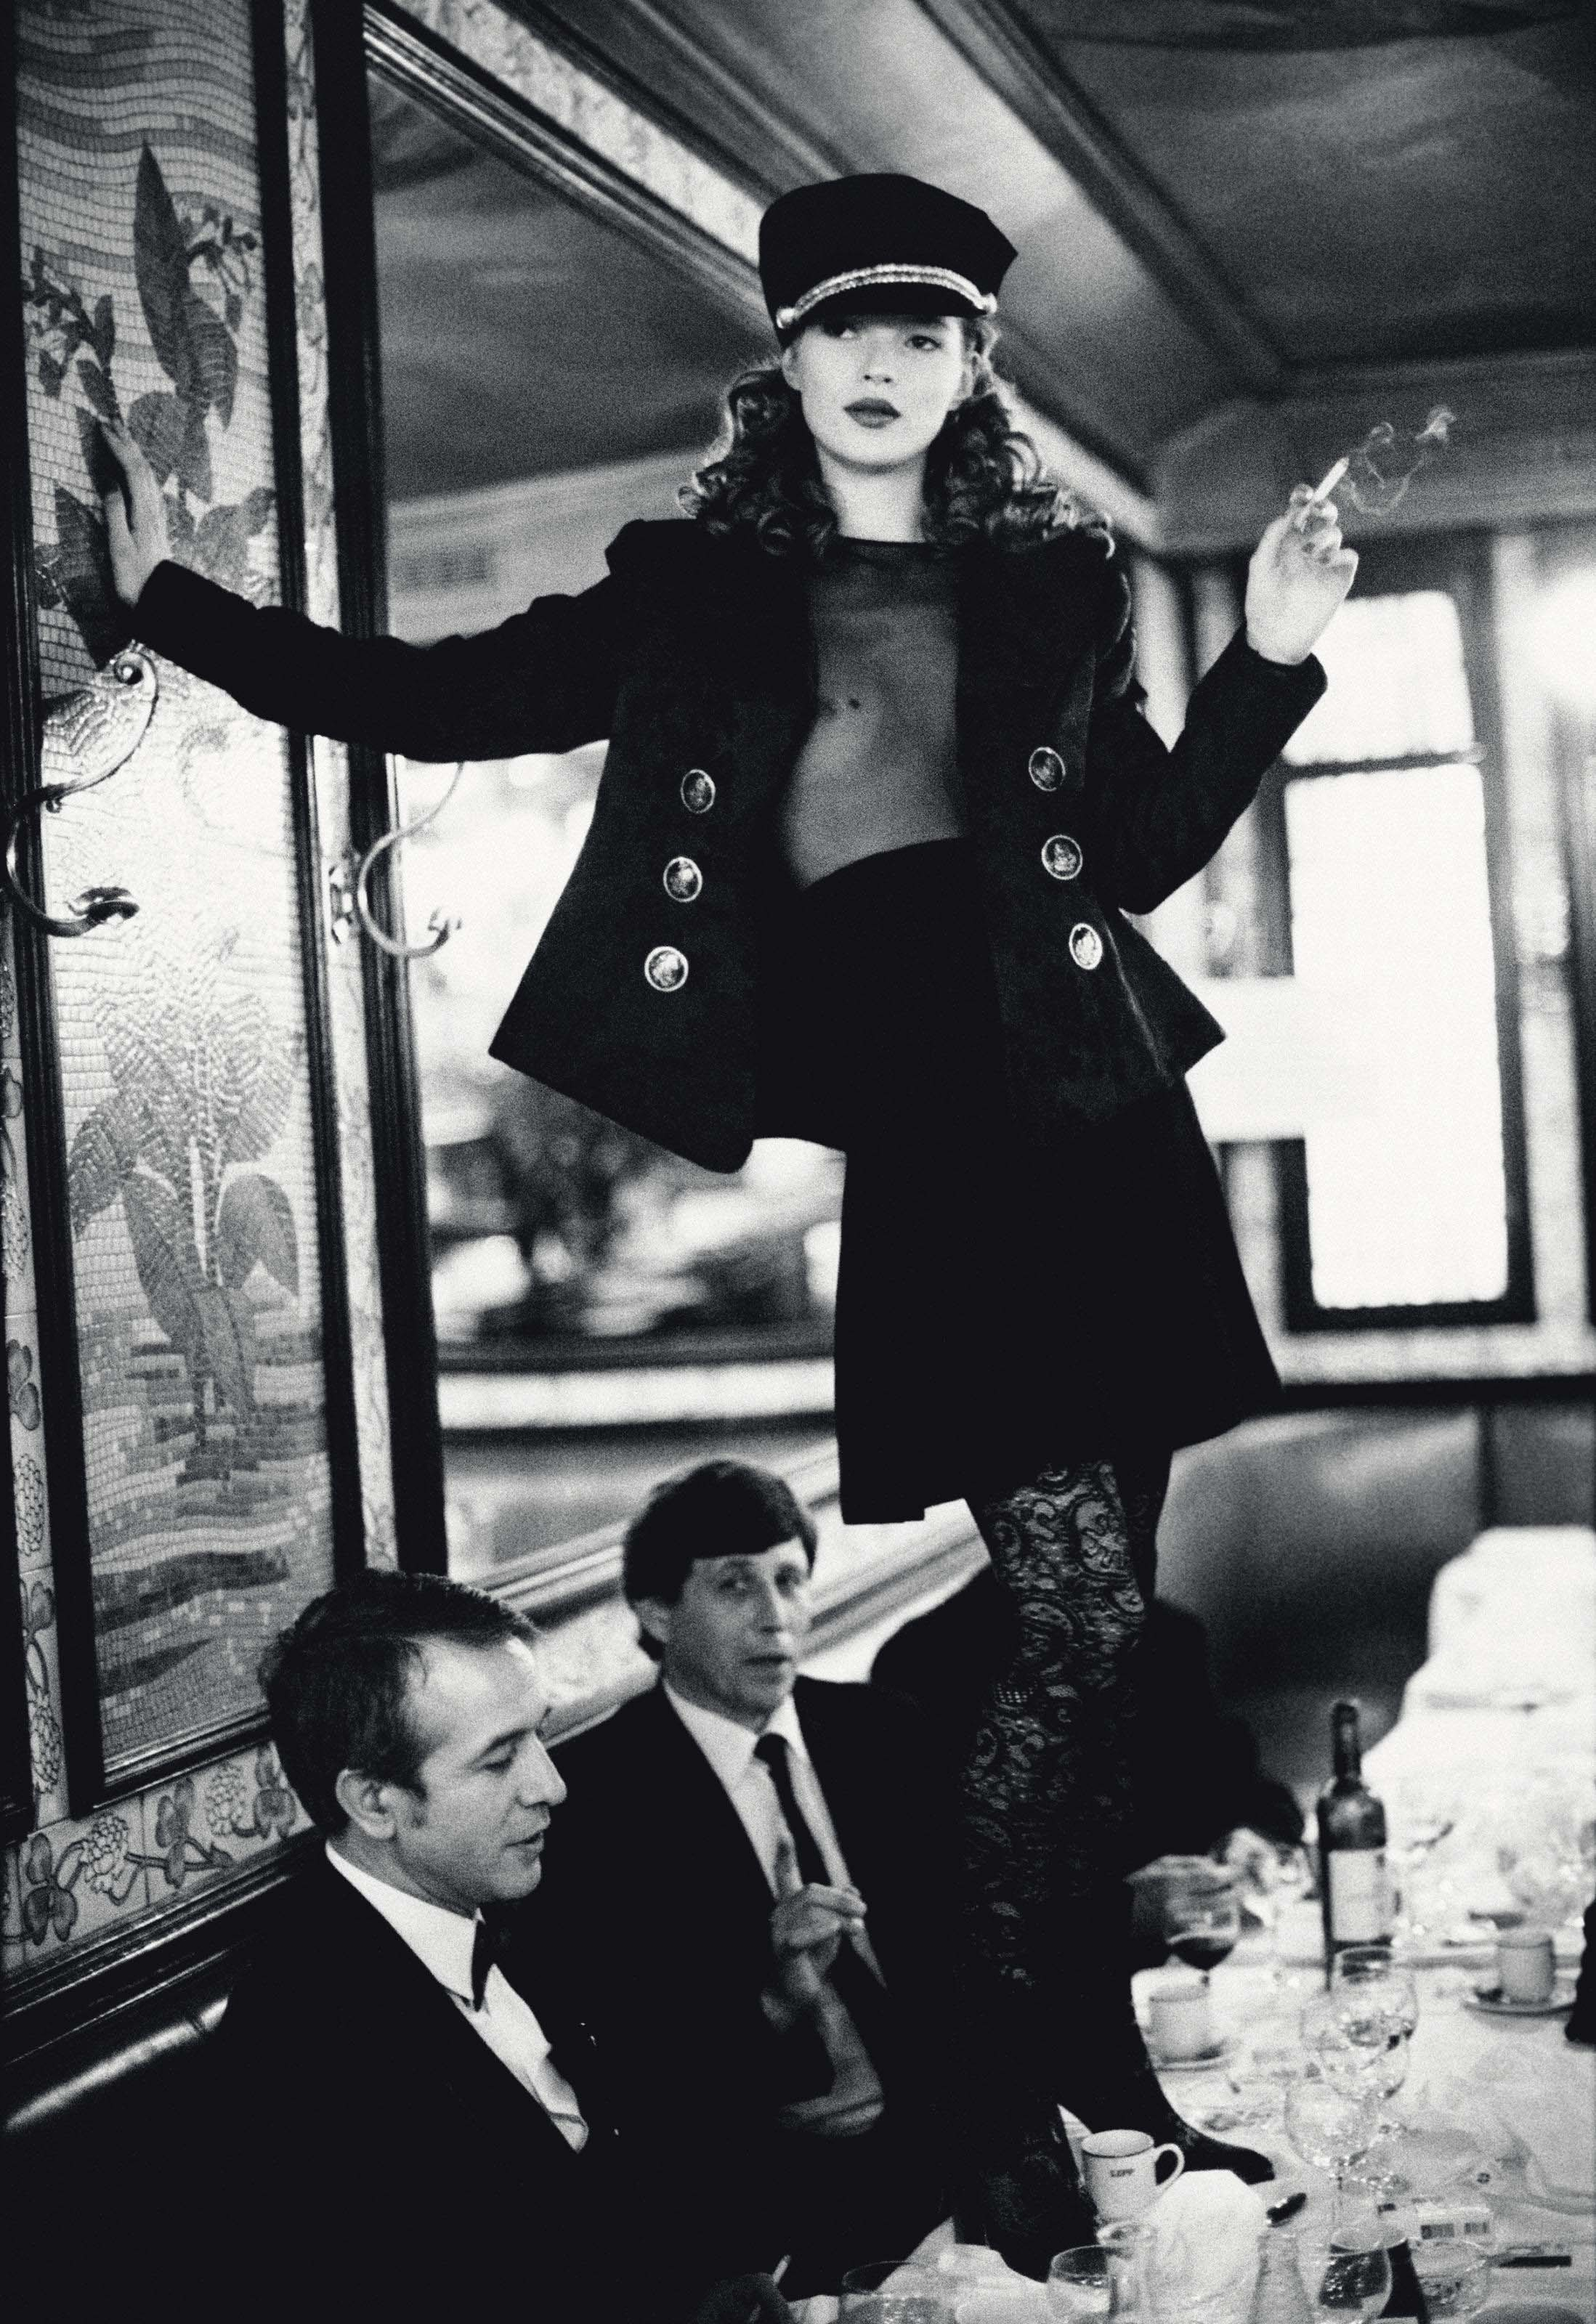 Kate Moss in Paris at Cafe Lipp